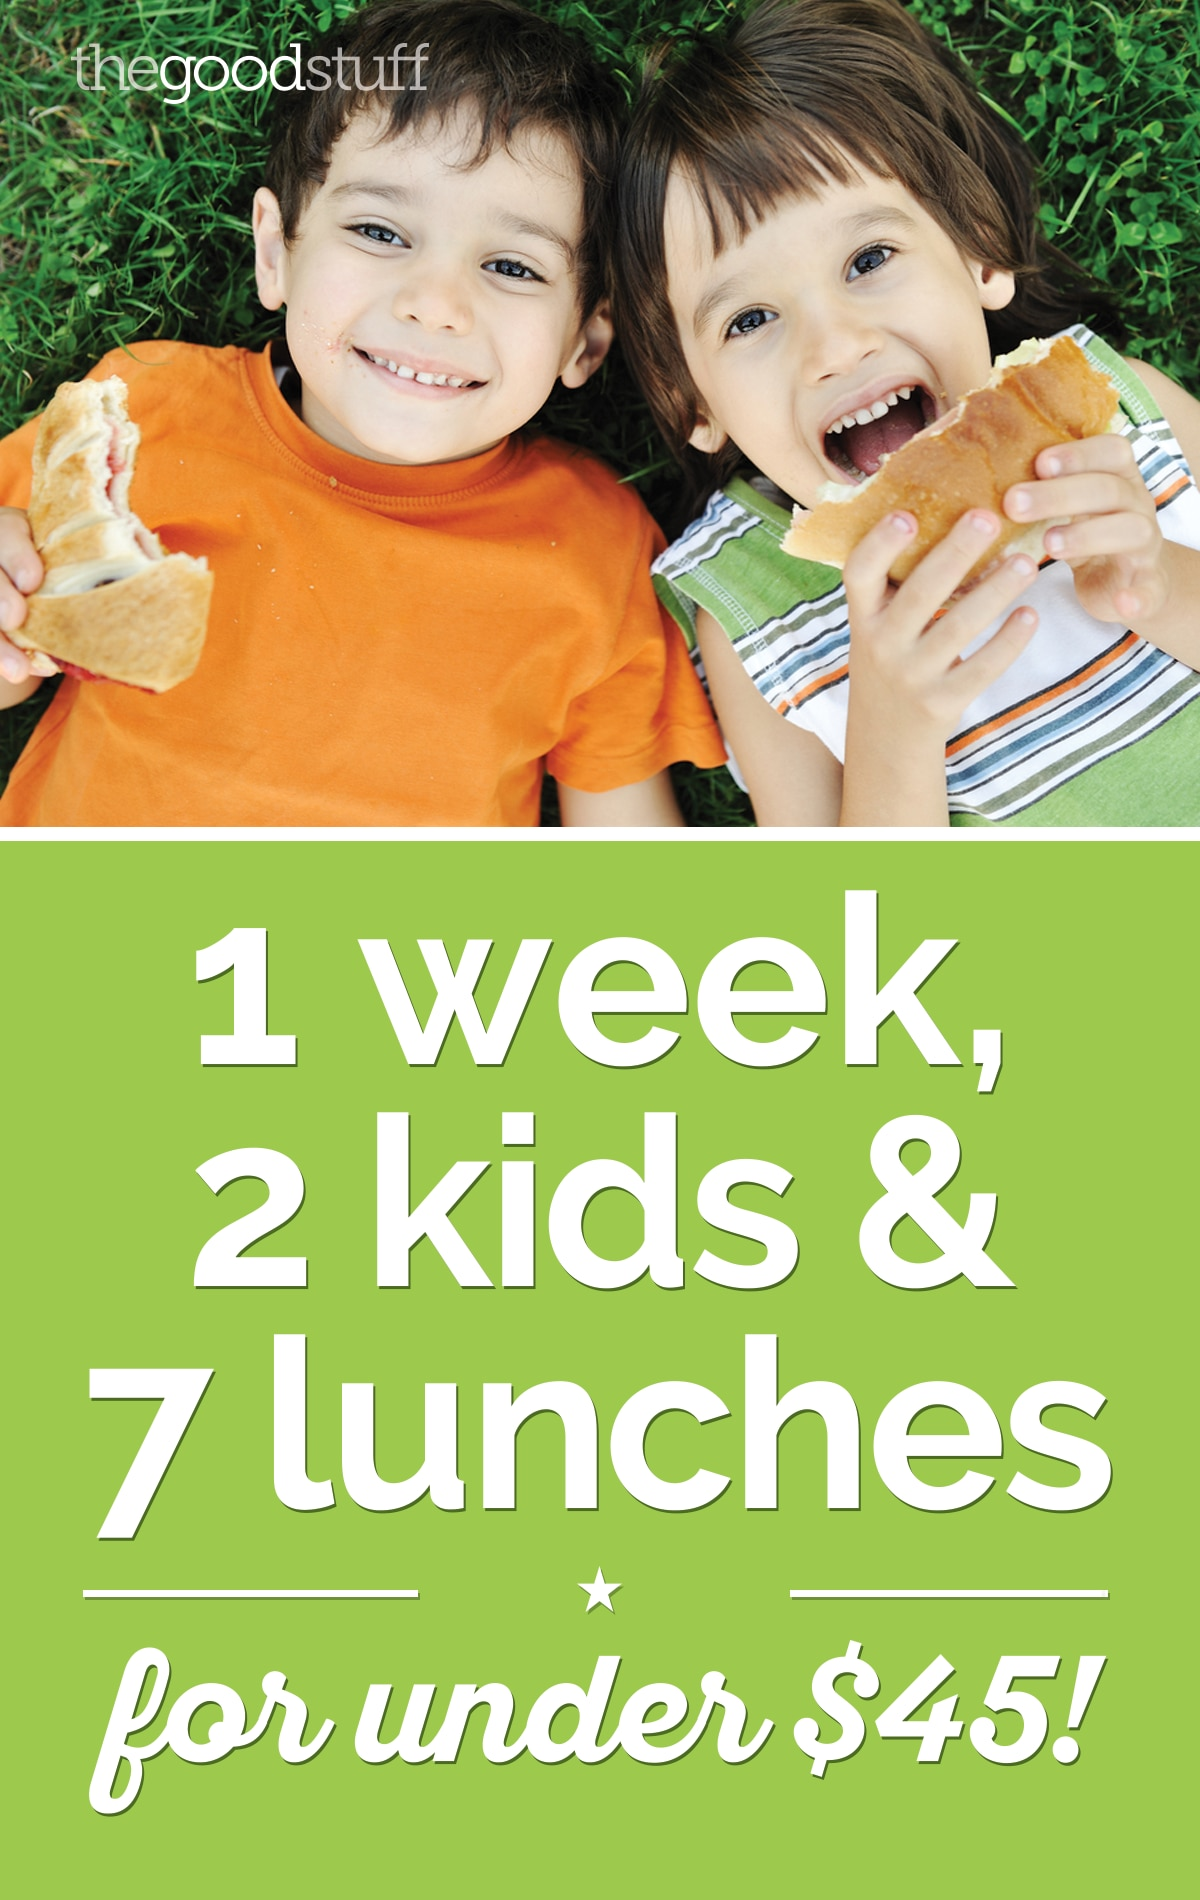 1 Week, 2 Kids & 7 Lunches for Under $45! | thegoodstuff